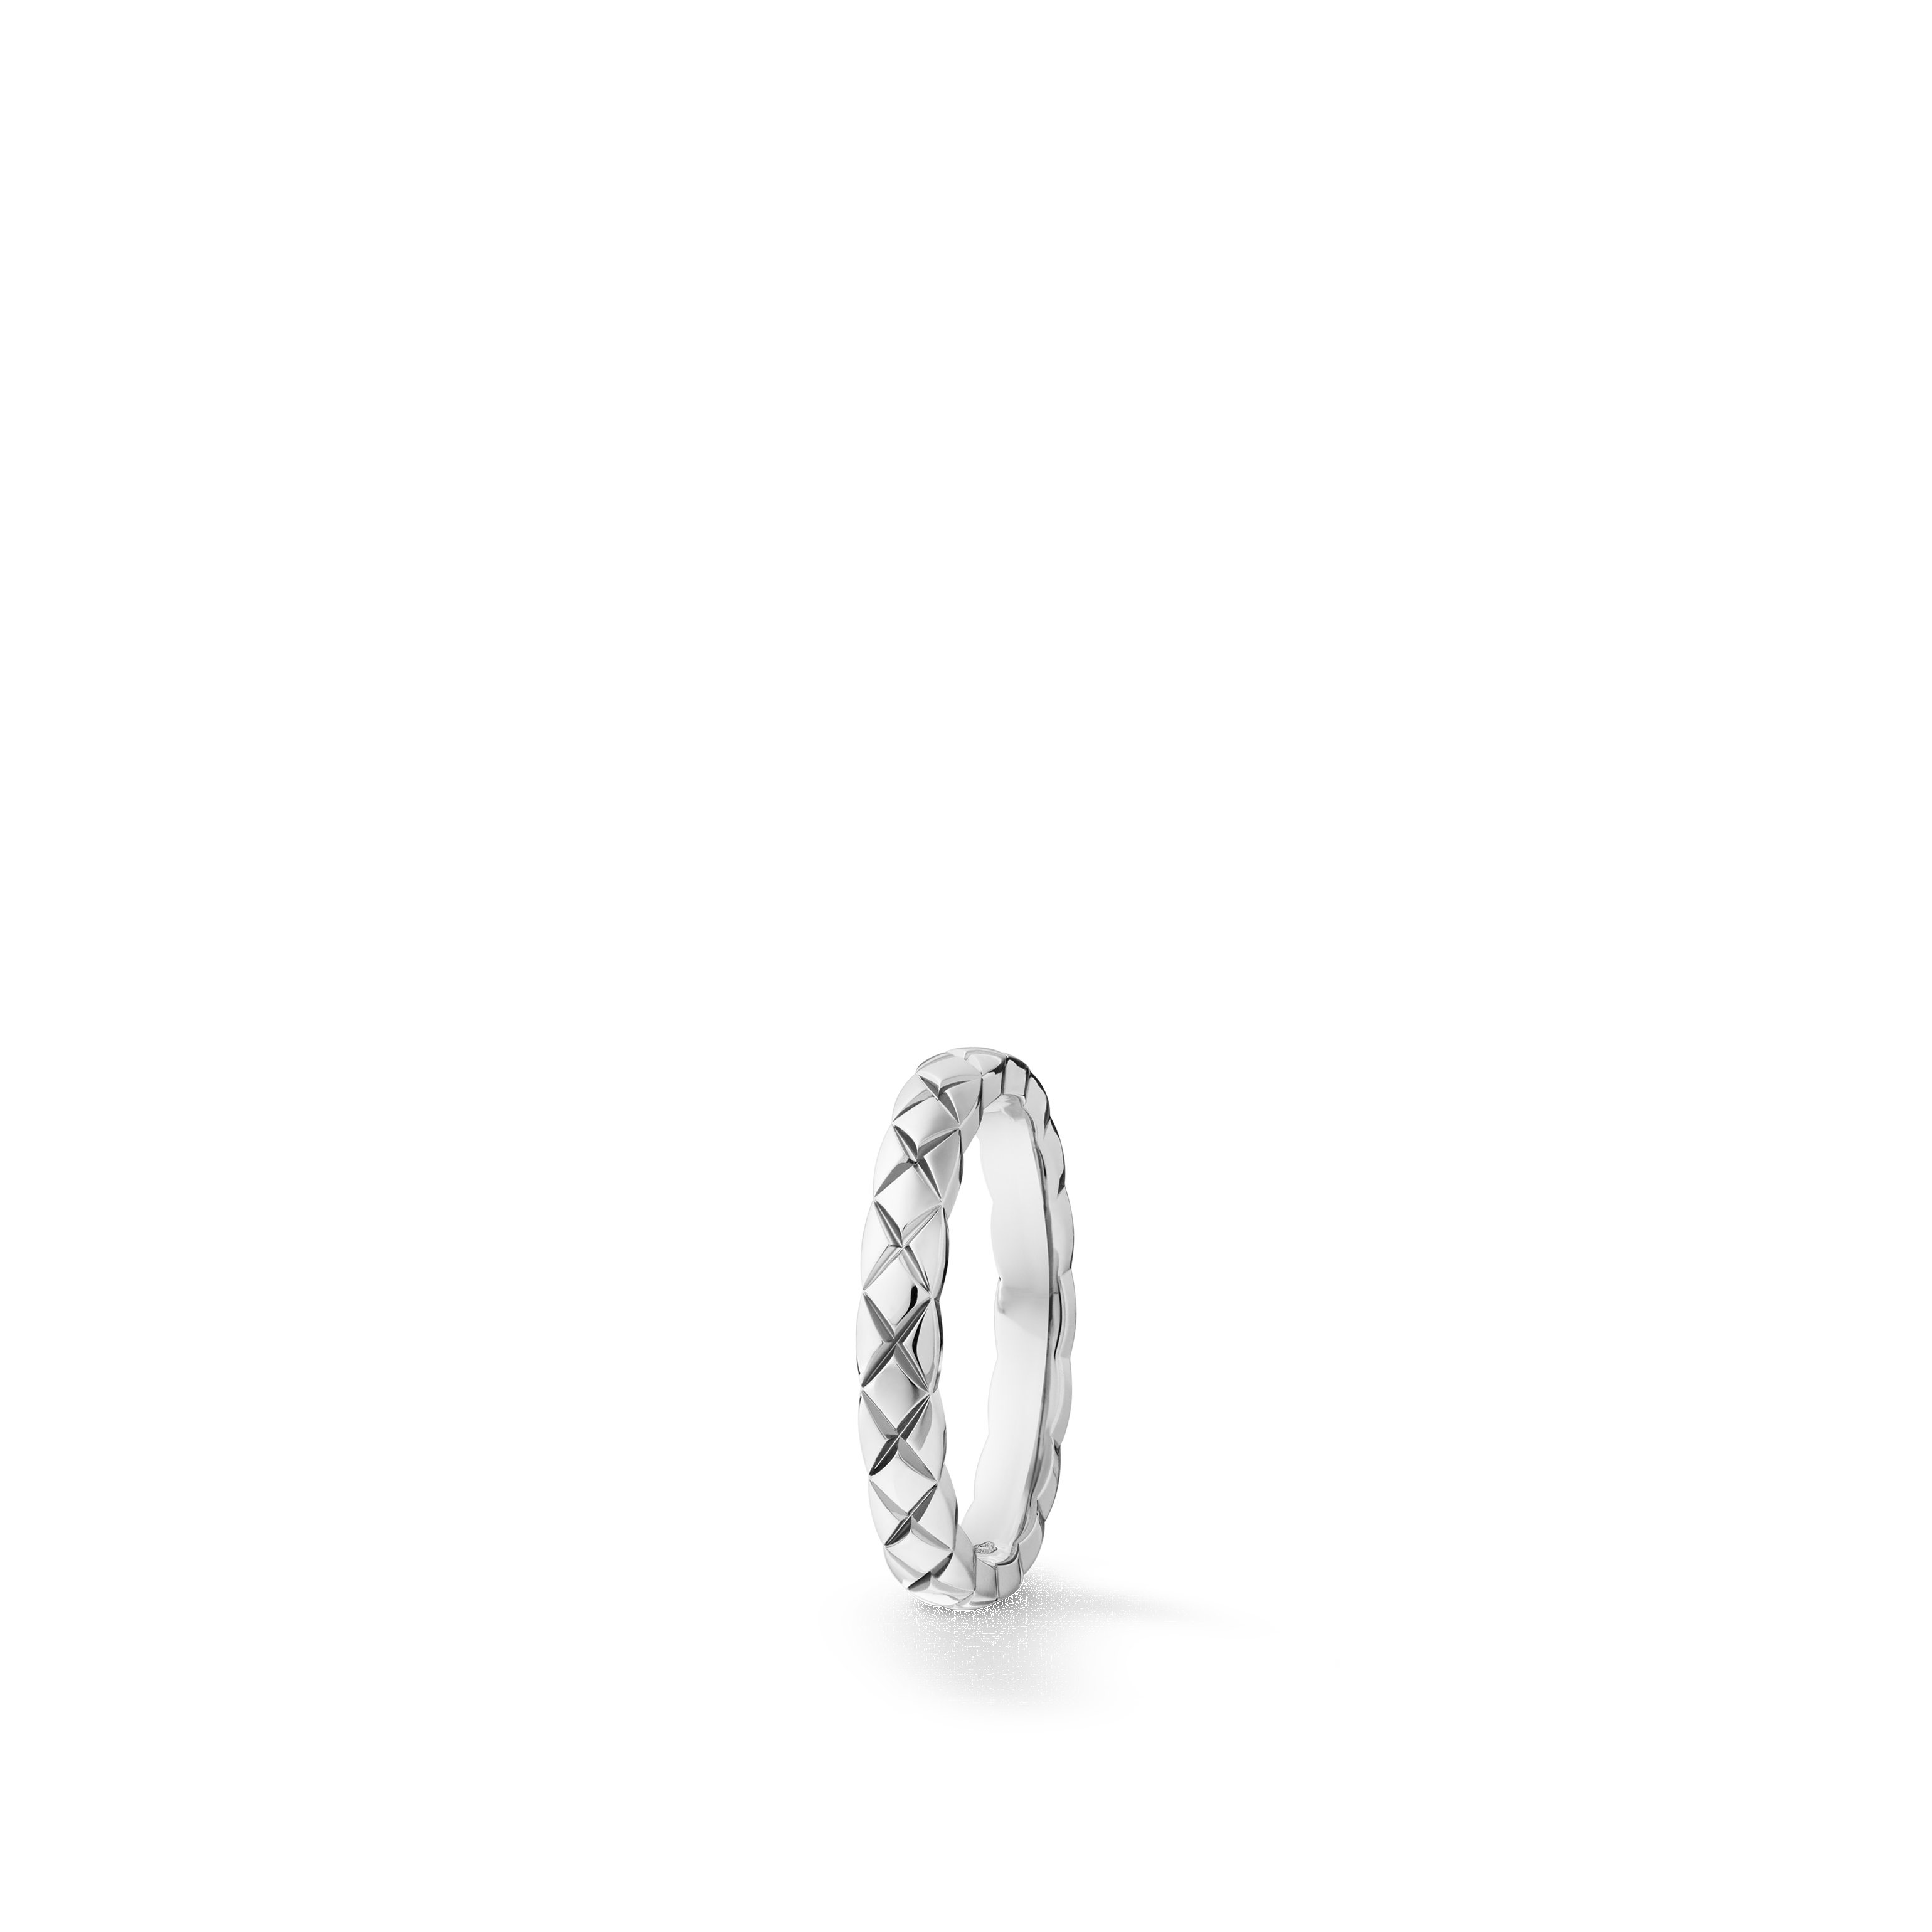 Coco Crush wedding band - Quilted motif, small version, platinum - CHANEL - Default view - see standard sized version